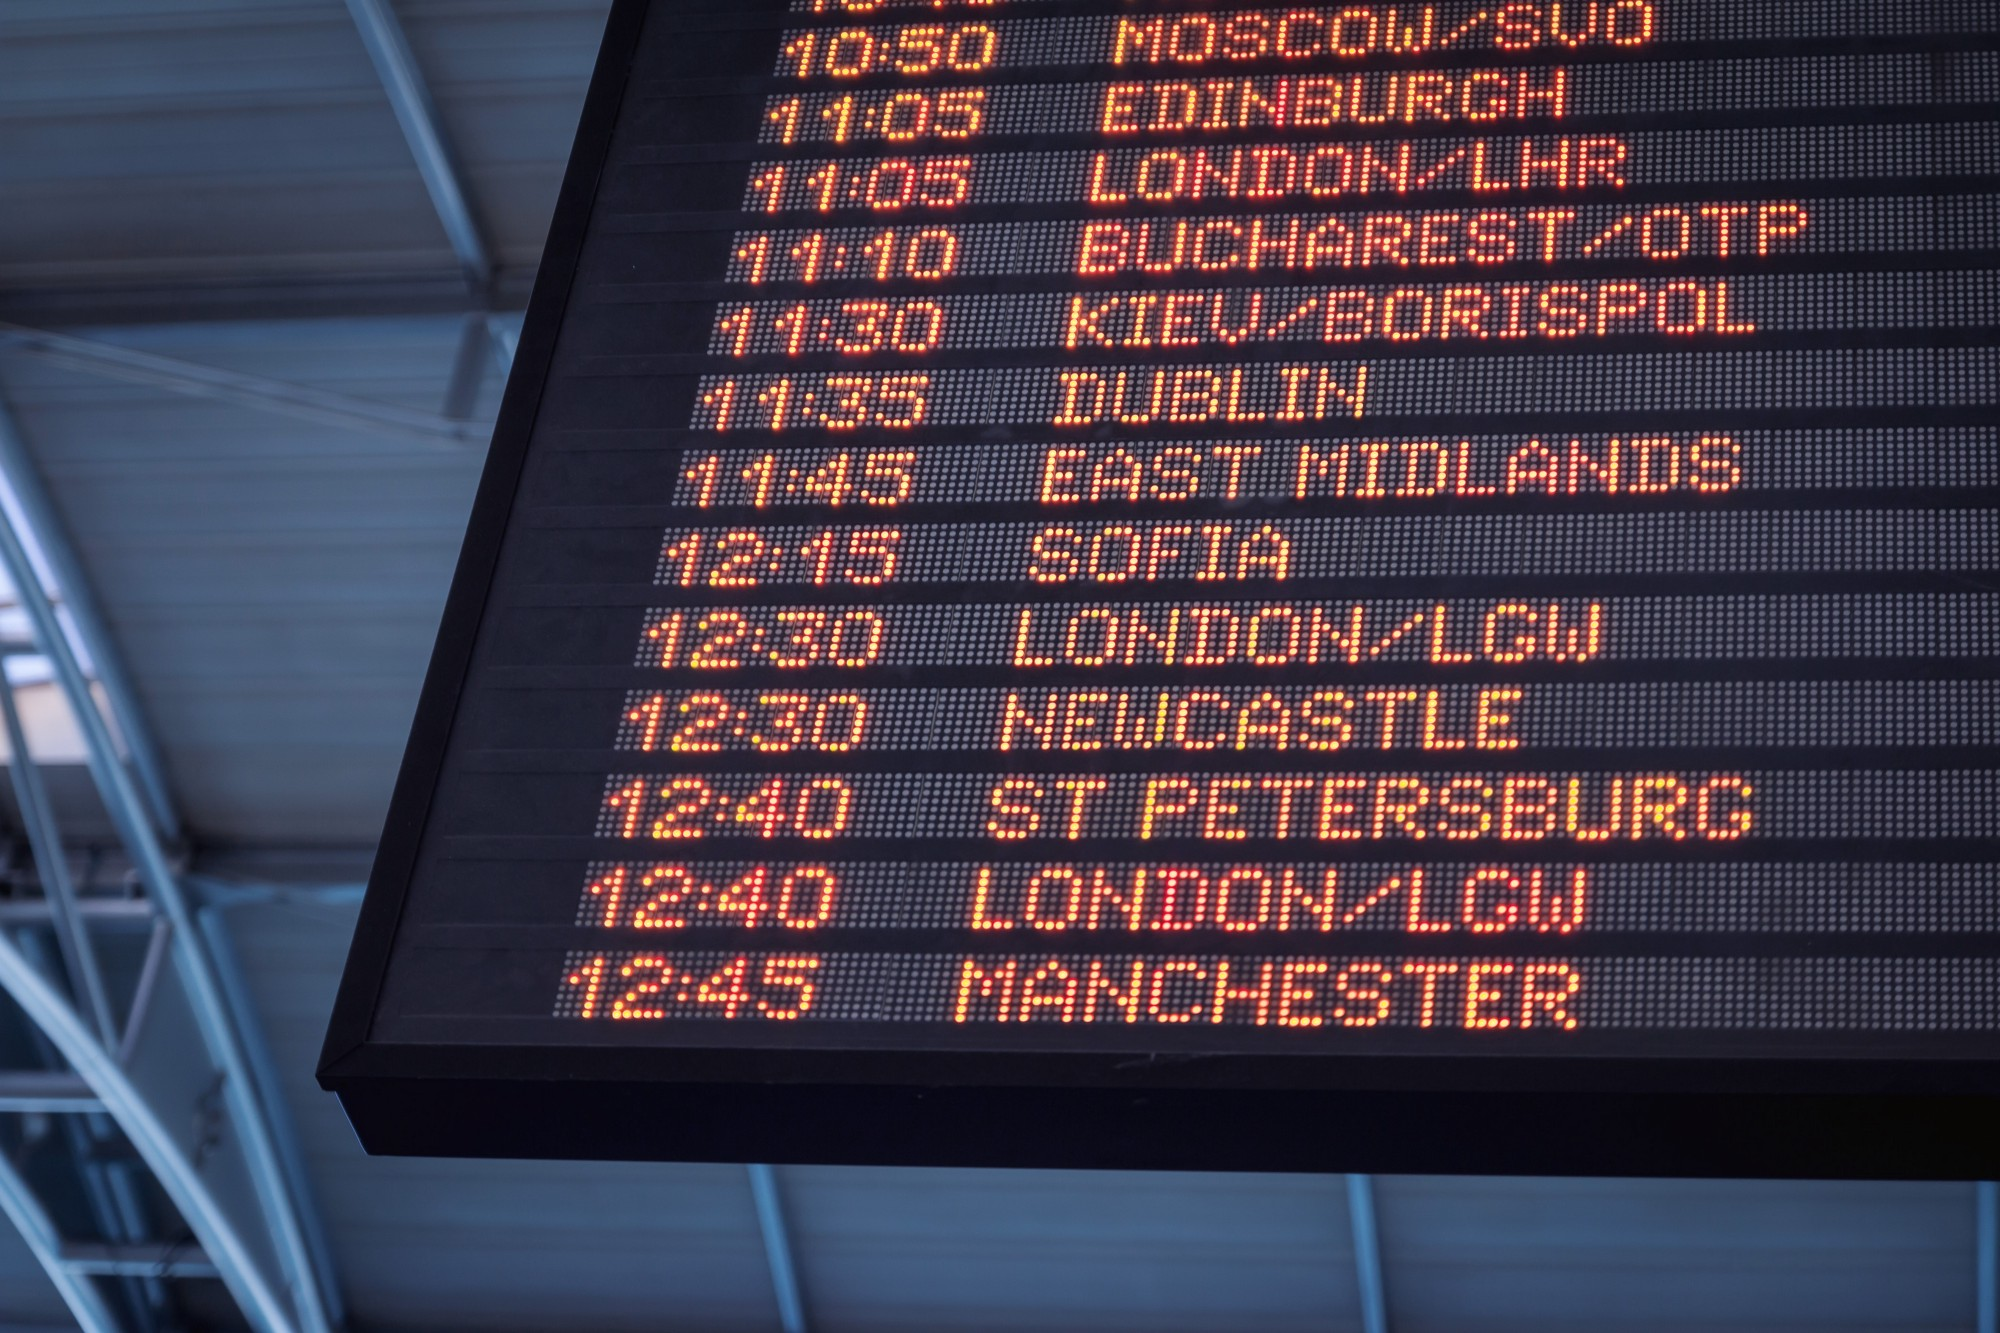 Cheap One Way Flights Cheap One Way Flights Guide A Few Handy Tips For Finding